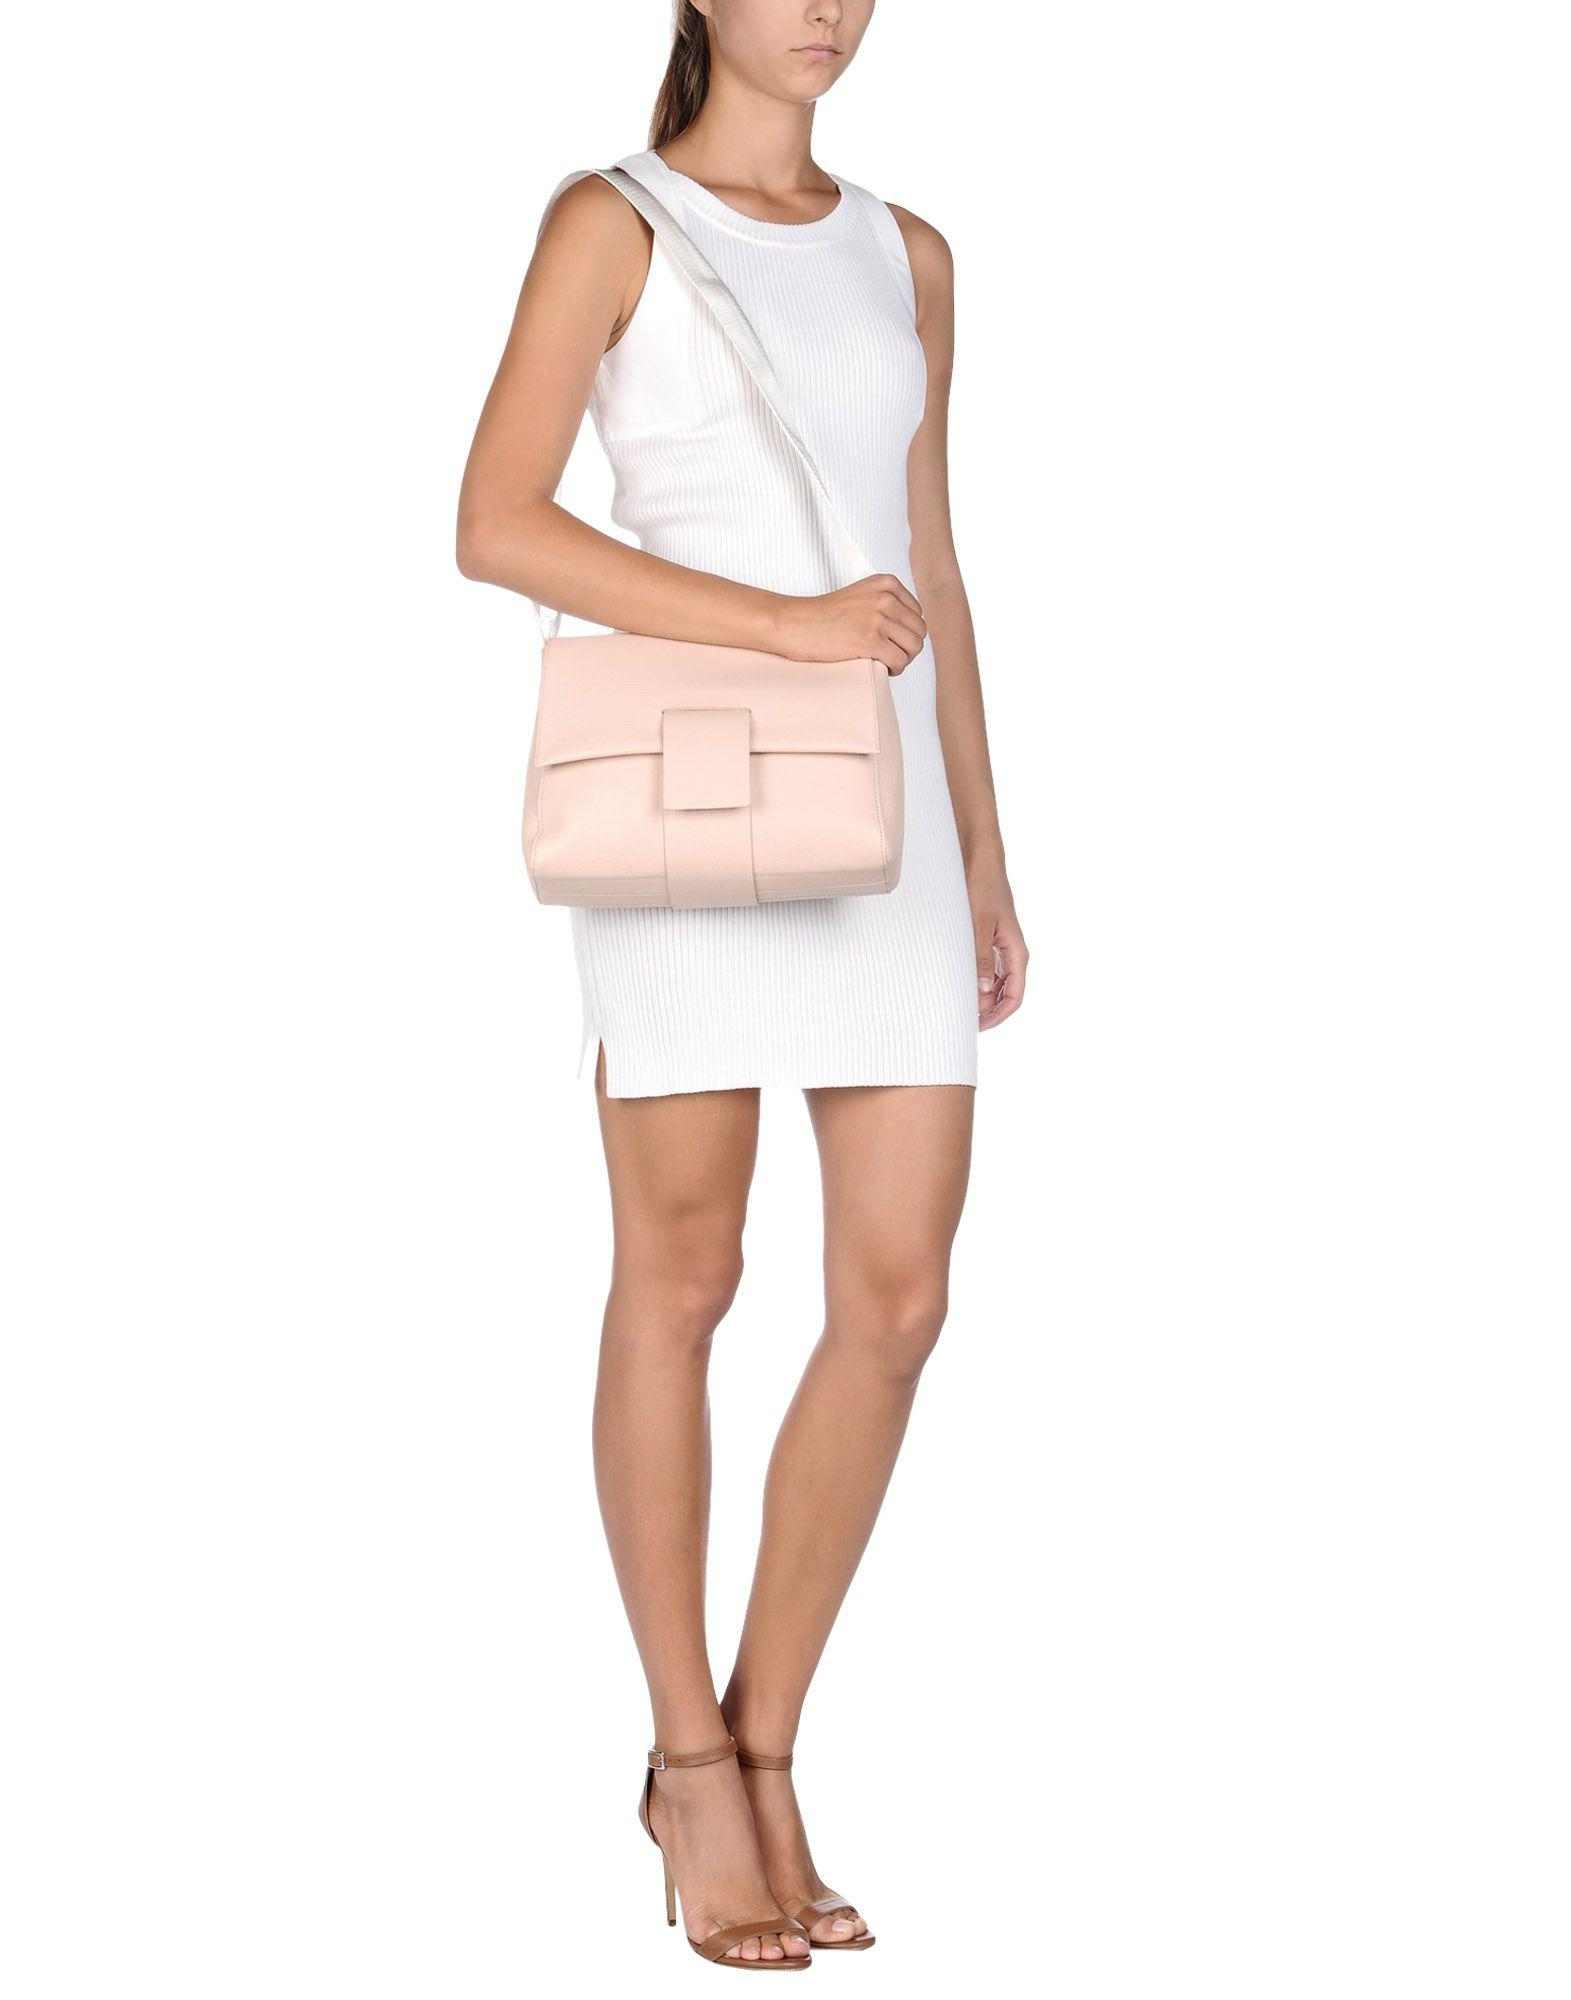 MM6 by Maison Martin Margiela Leather Cross-body Bag in Beige (Natural)